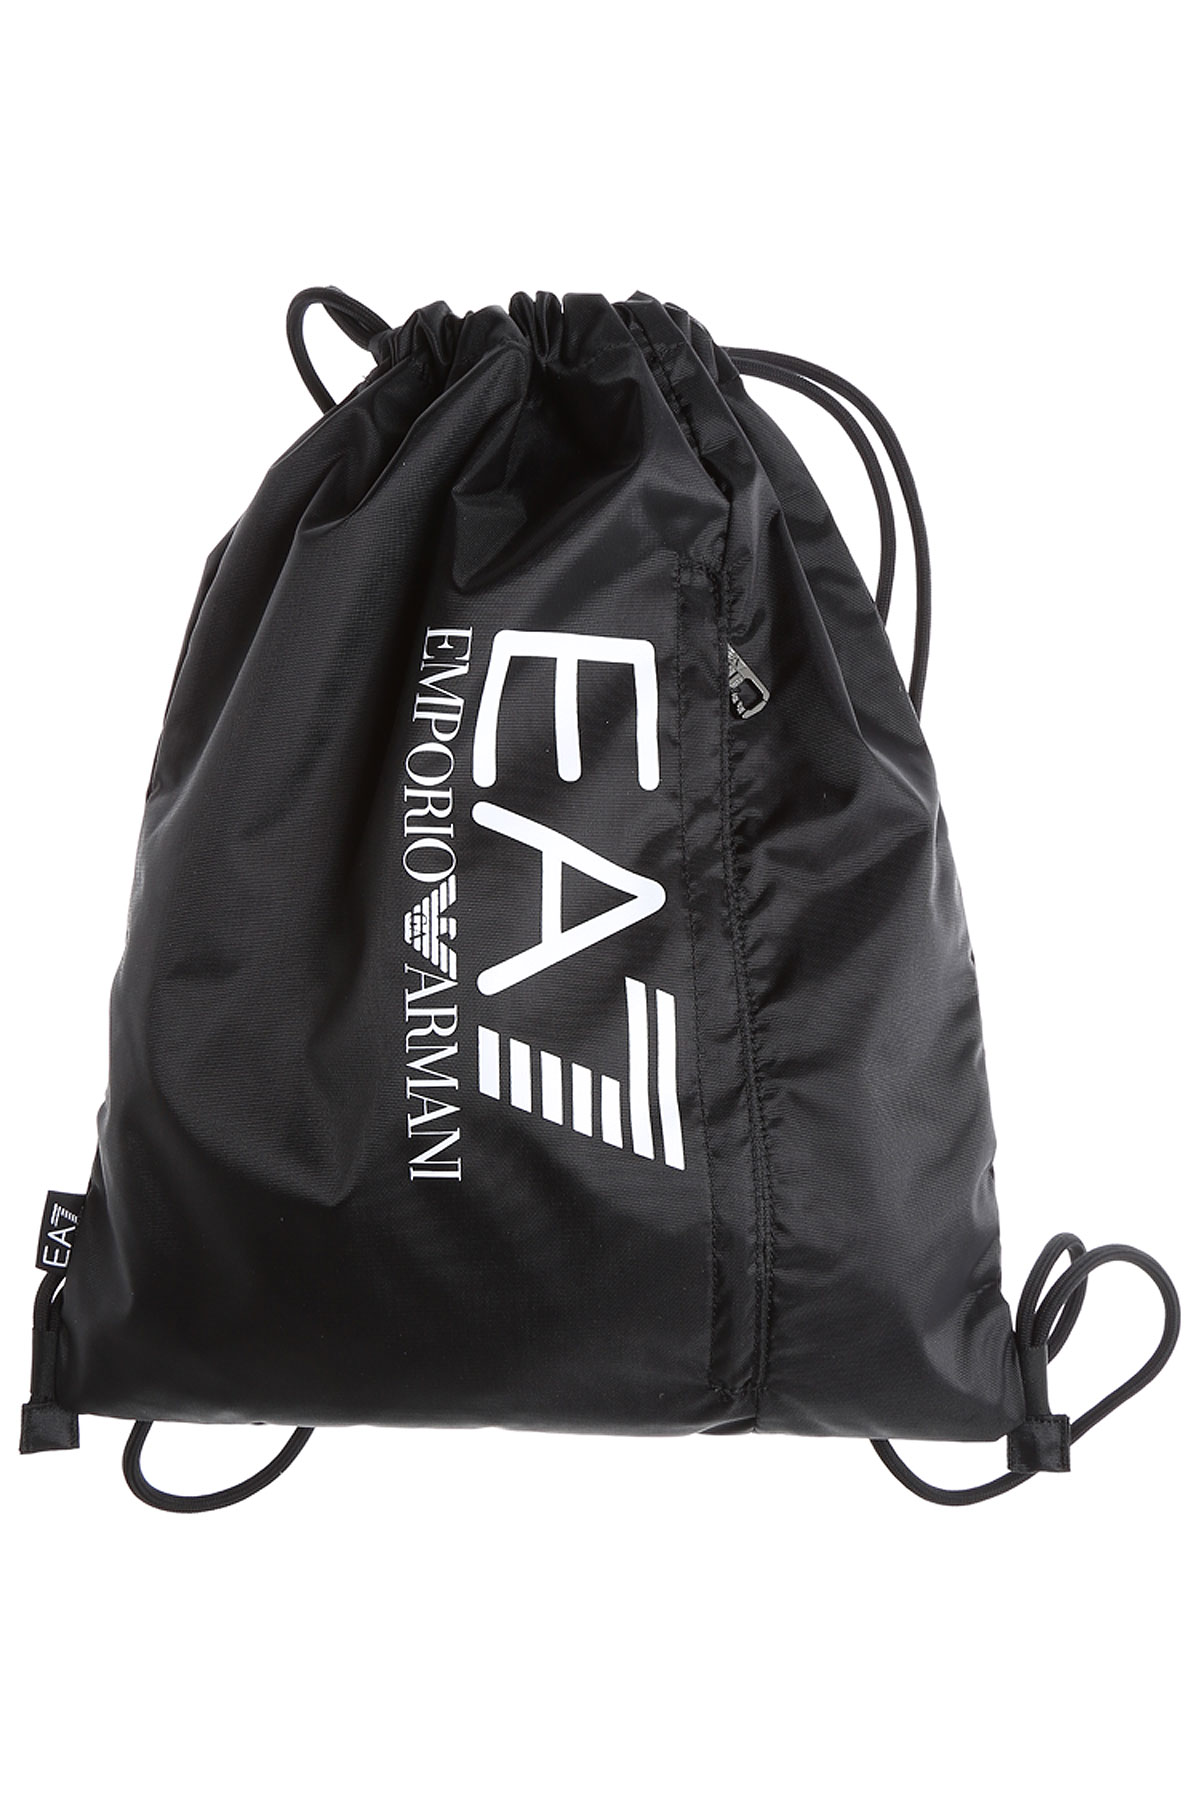 Image of Emporio Armani Backpack for Men, Black, polyester, 2017